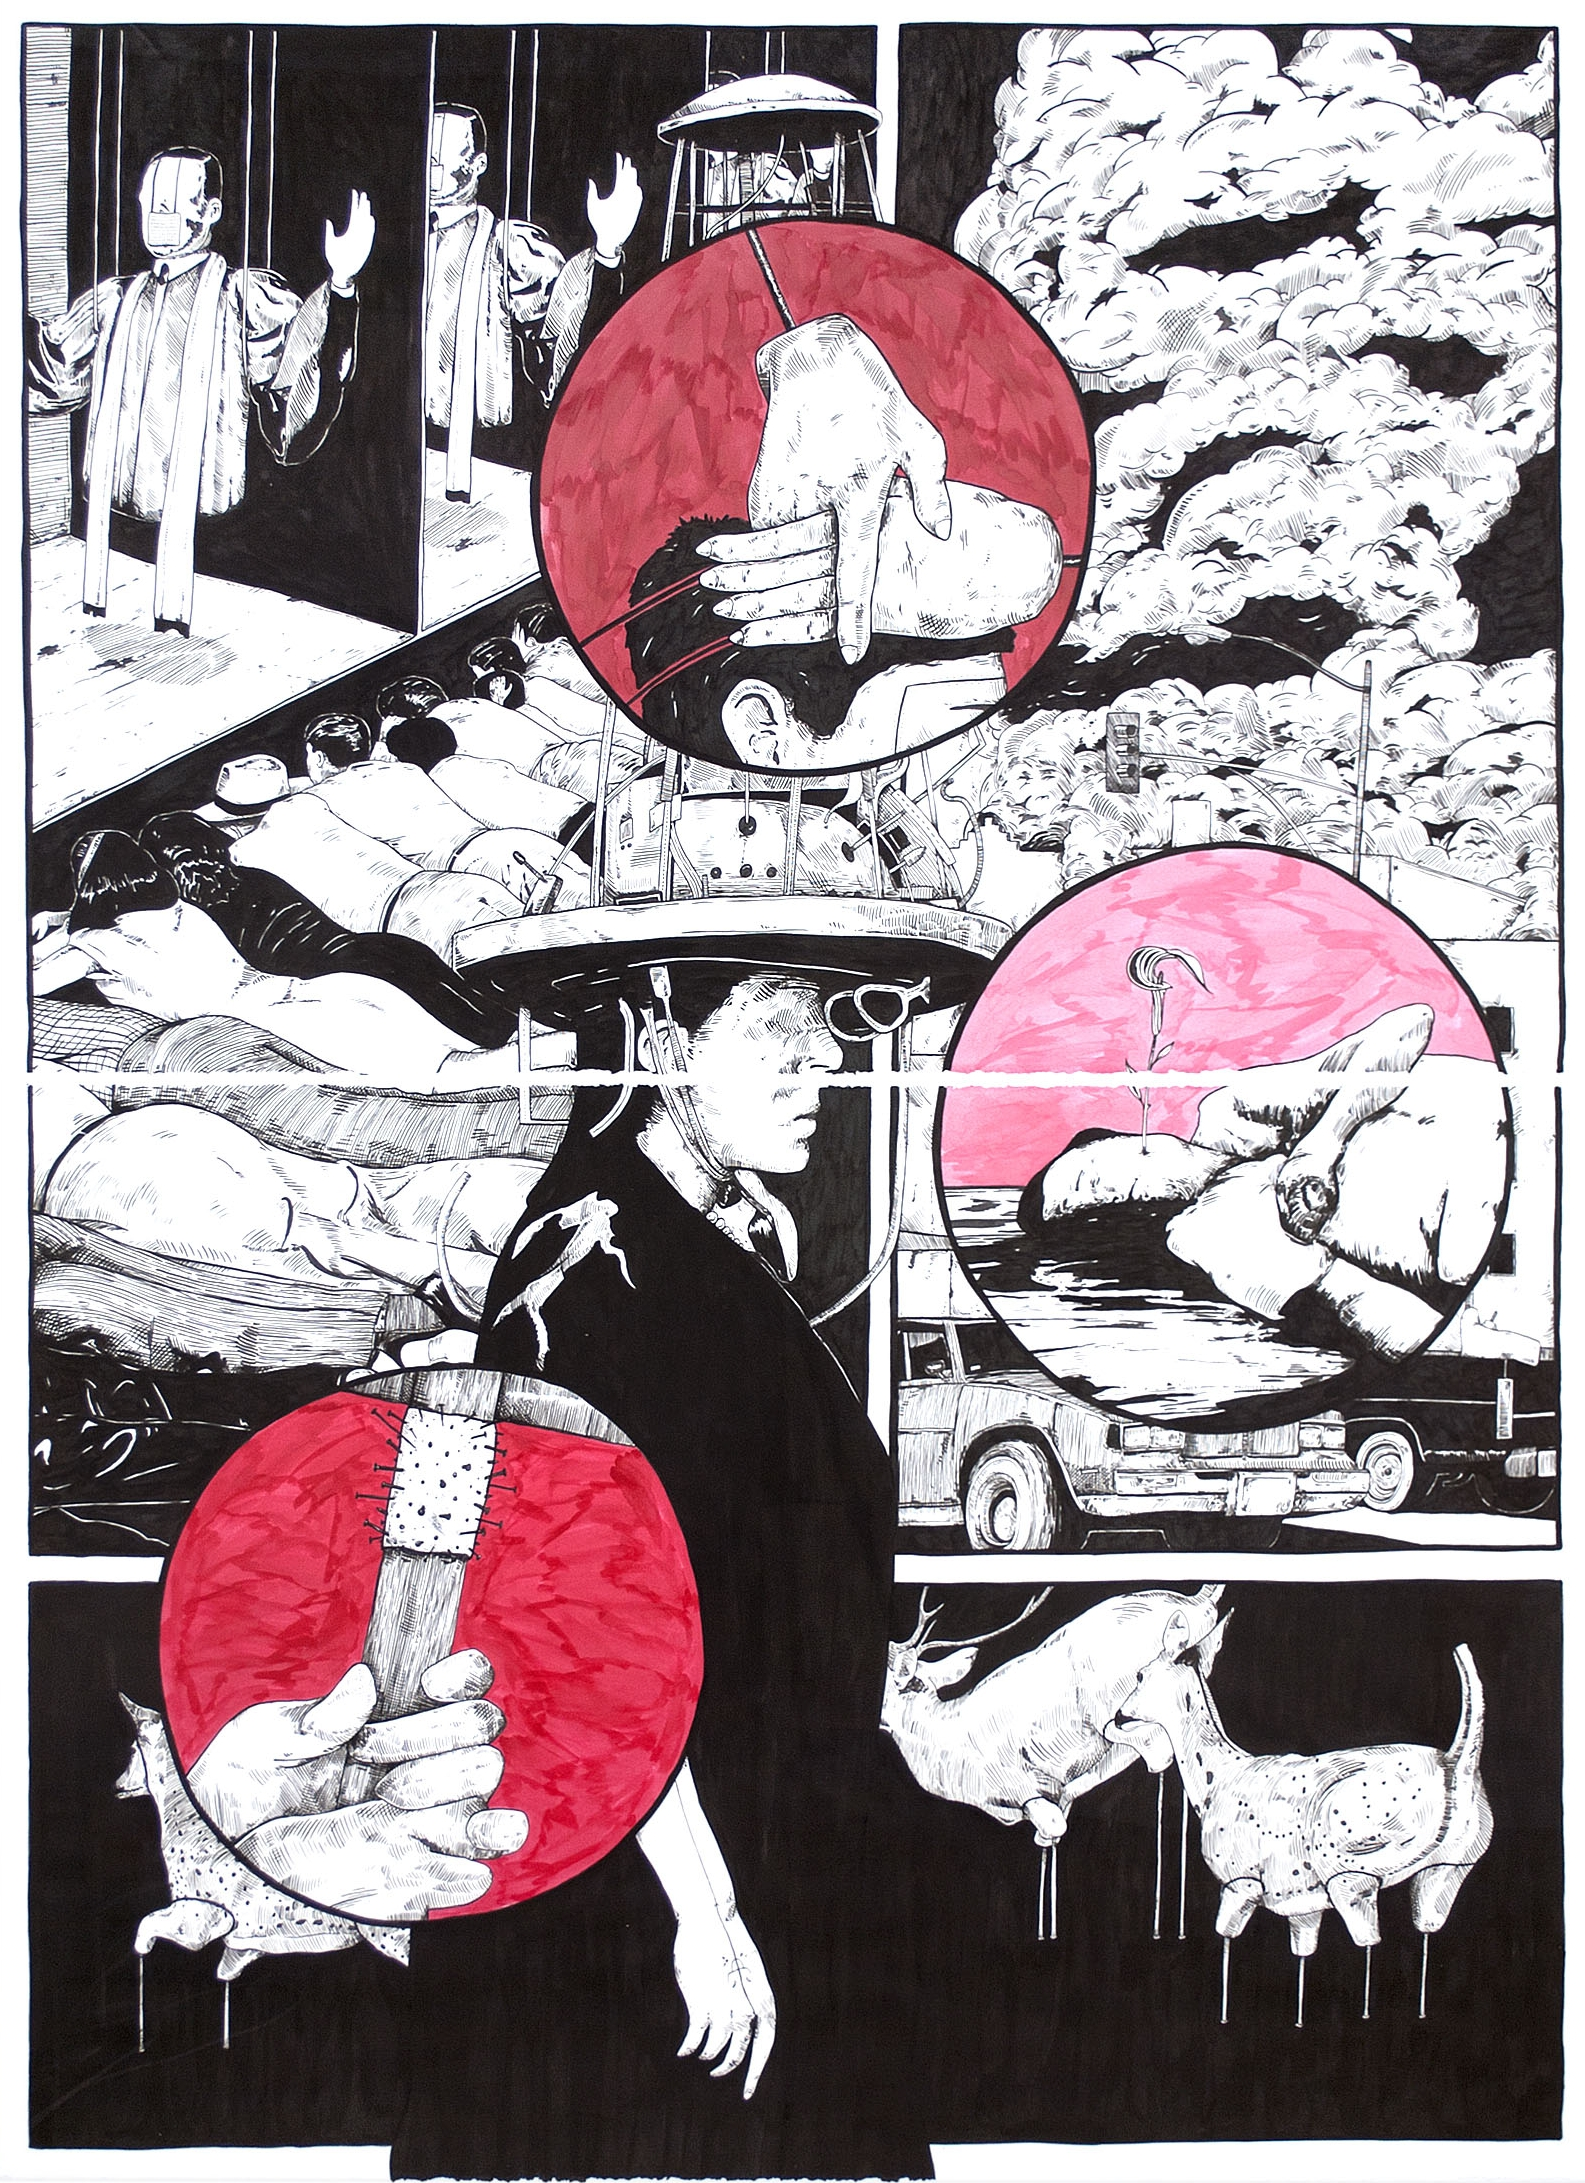 Lower Than the Lowest Animal #7 , 2014 India ink on paper 60 x 44 inches (diptych)